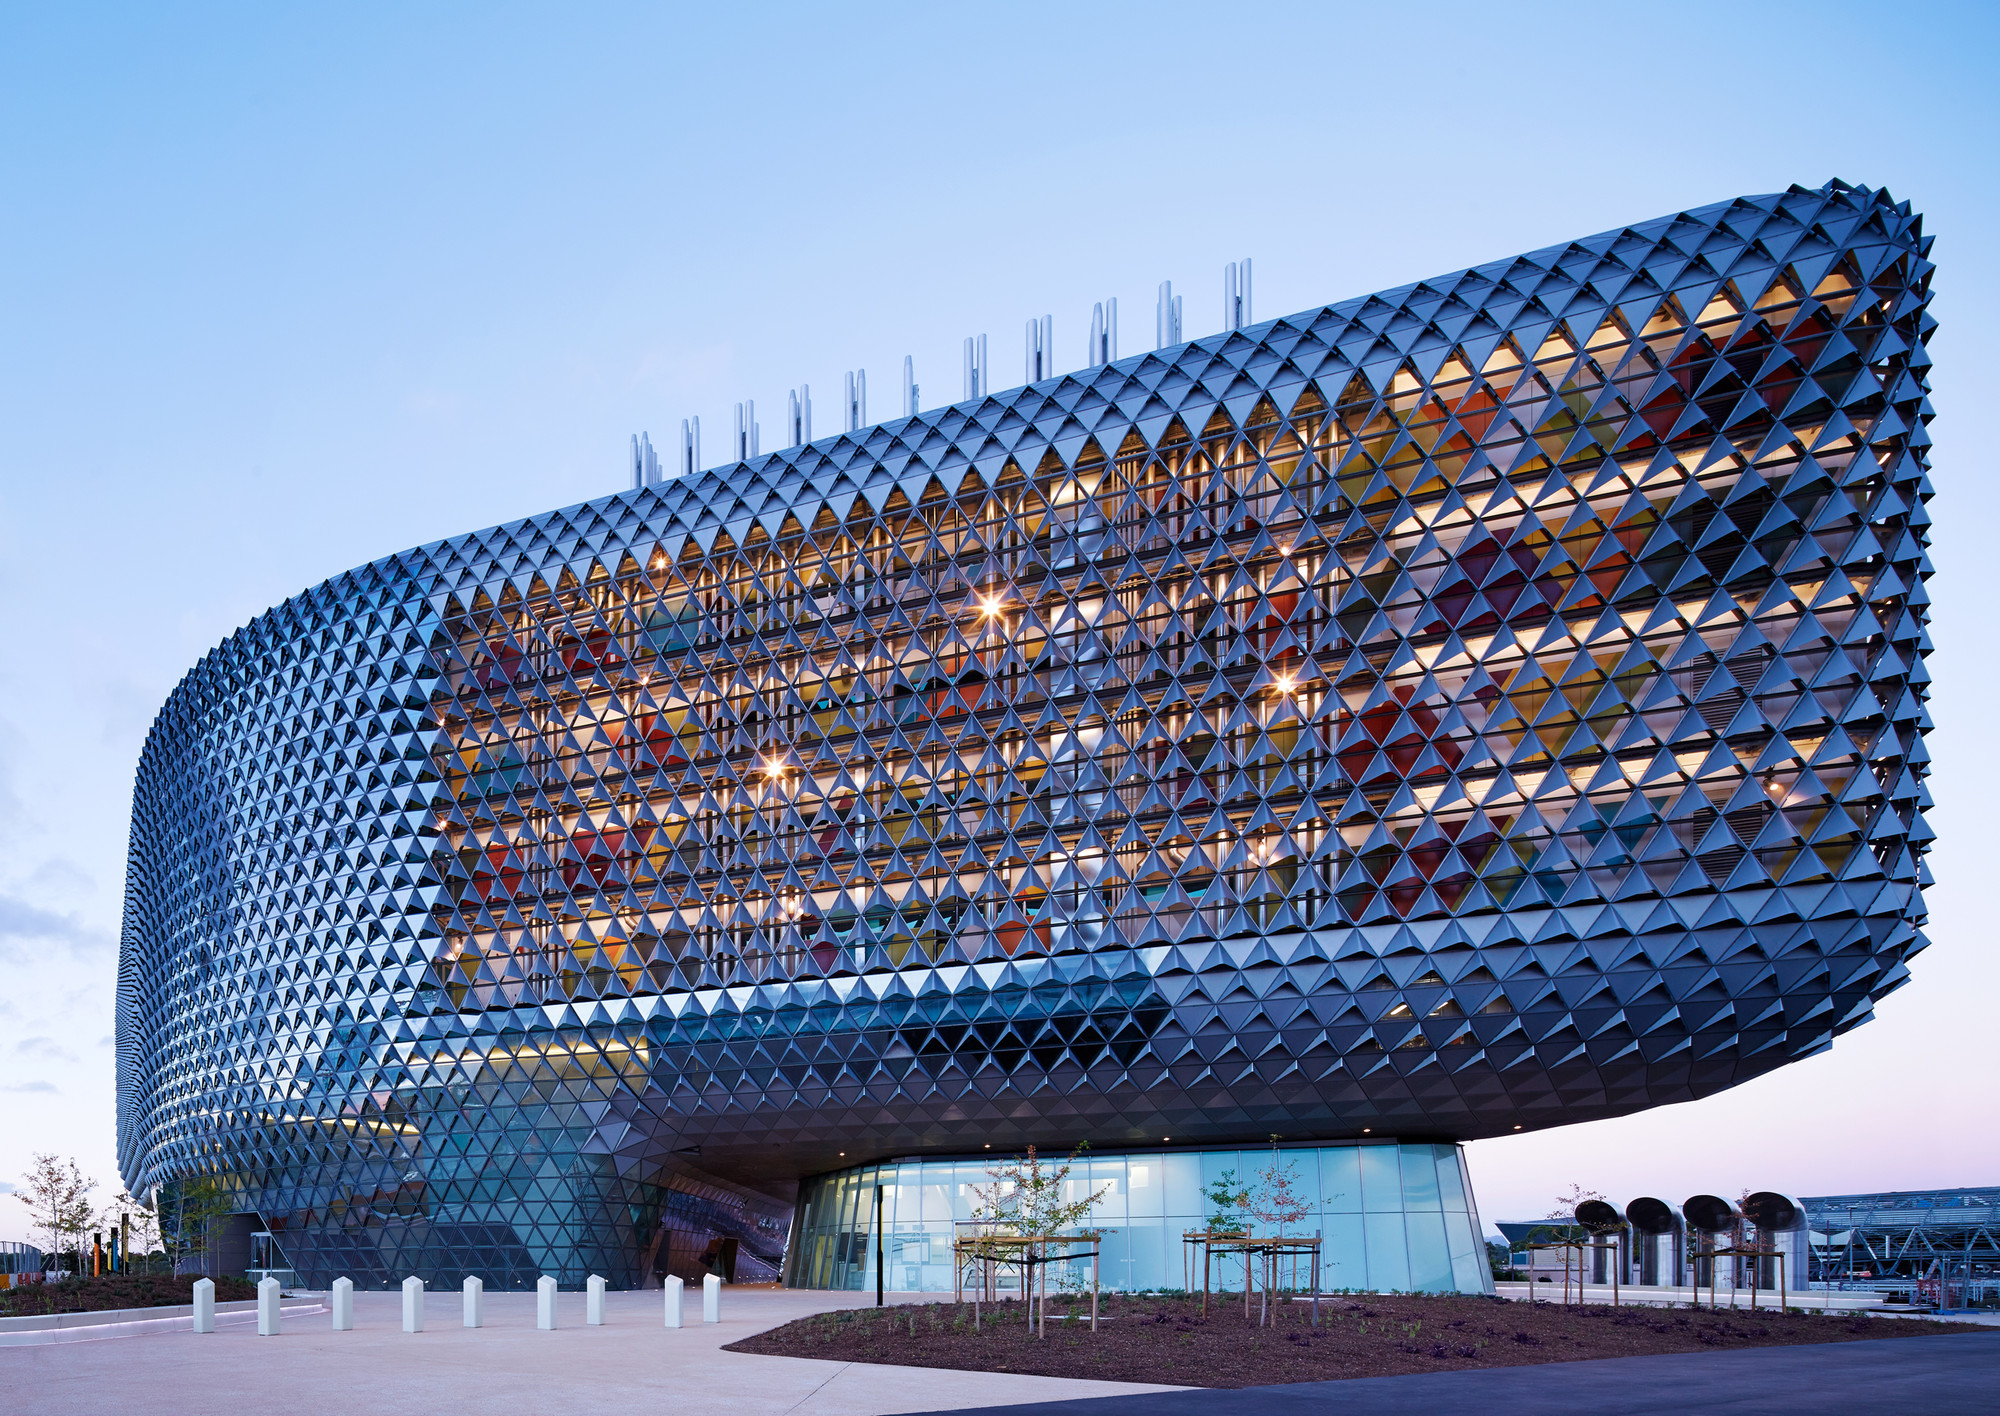 South Australian Health and Medical Research Institute / Woods Bagot. Image © Peter Clarke